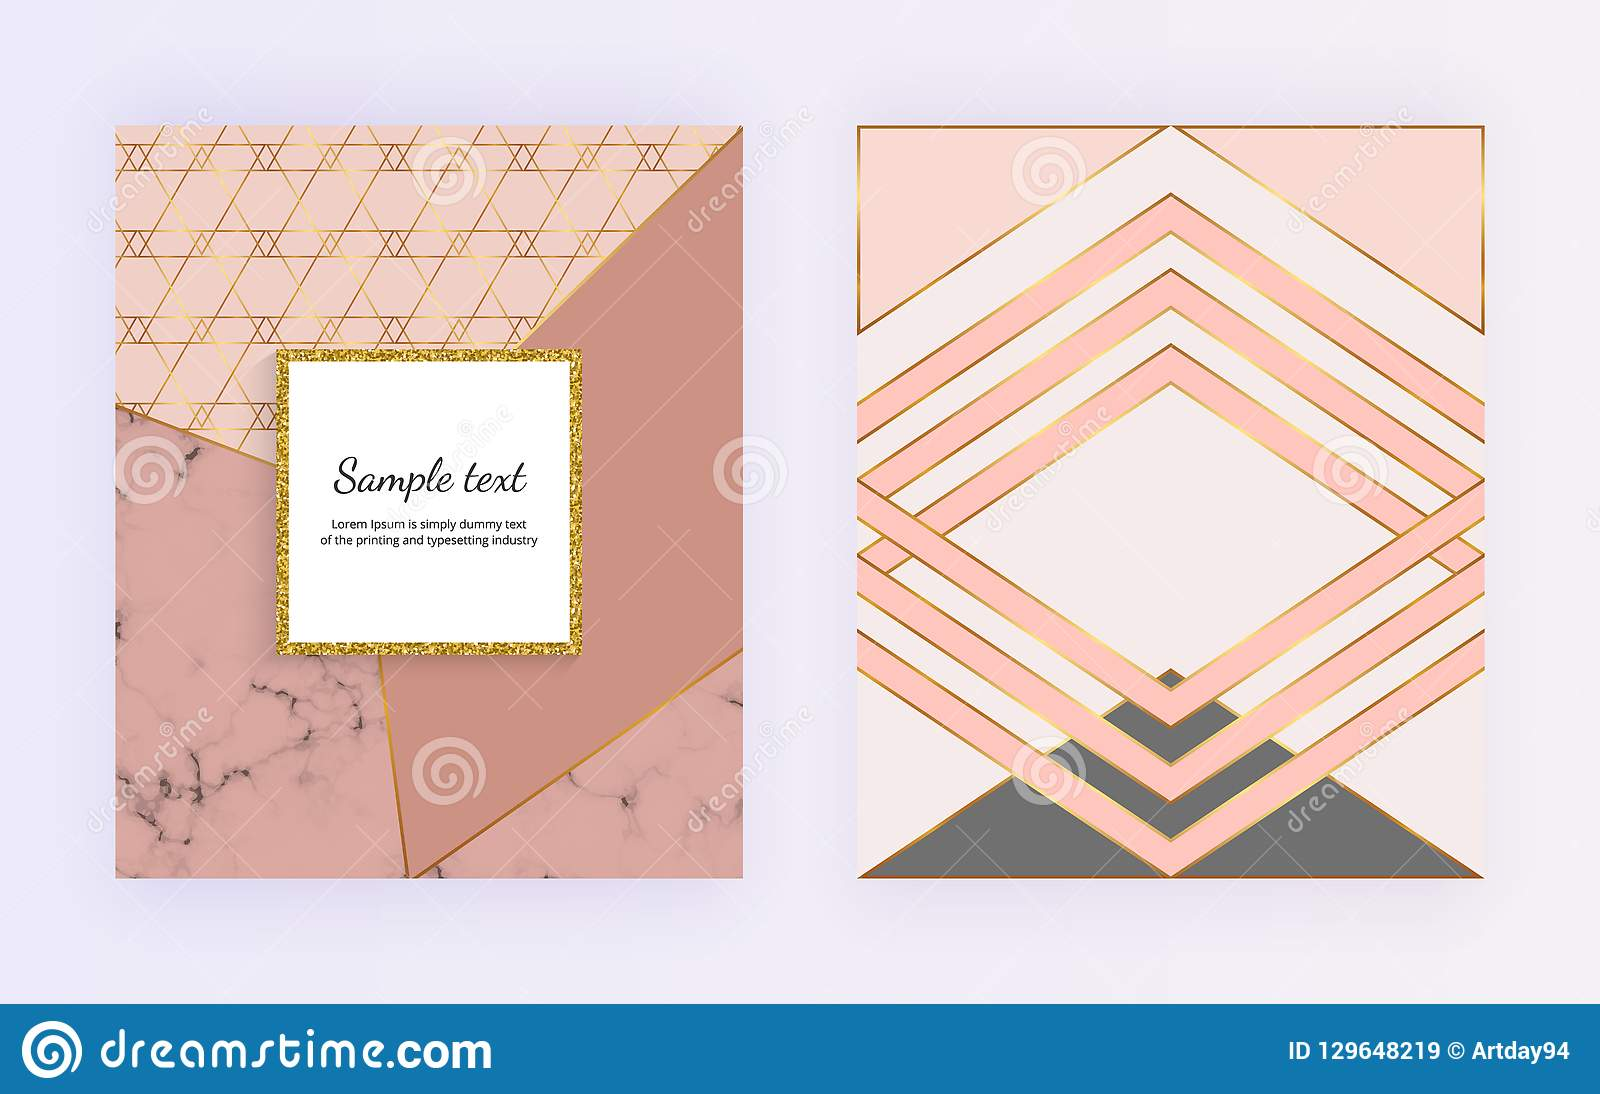 Geometric design with golden lines, triangular shapes. Modern templates for invitation, wedding, placard, birthday, brochure